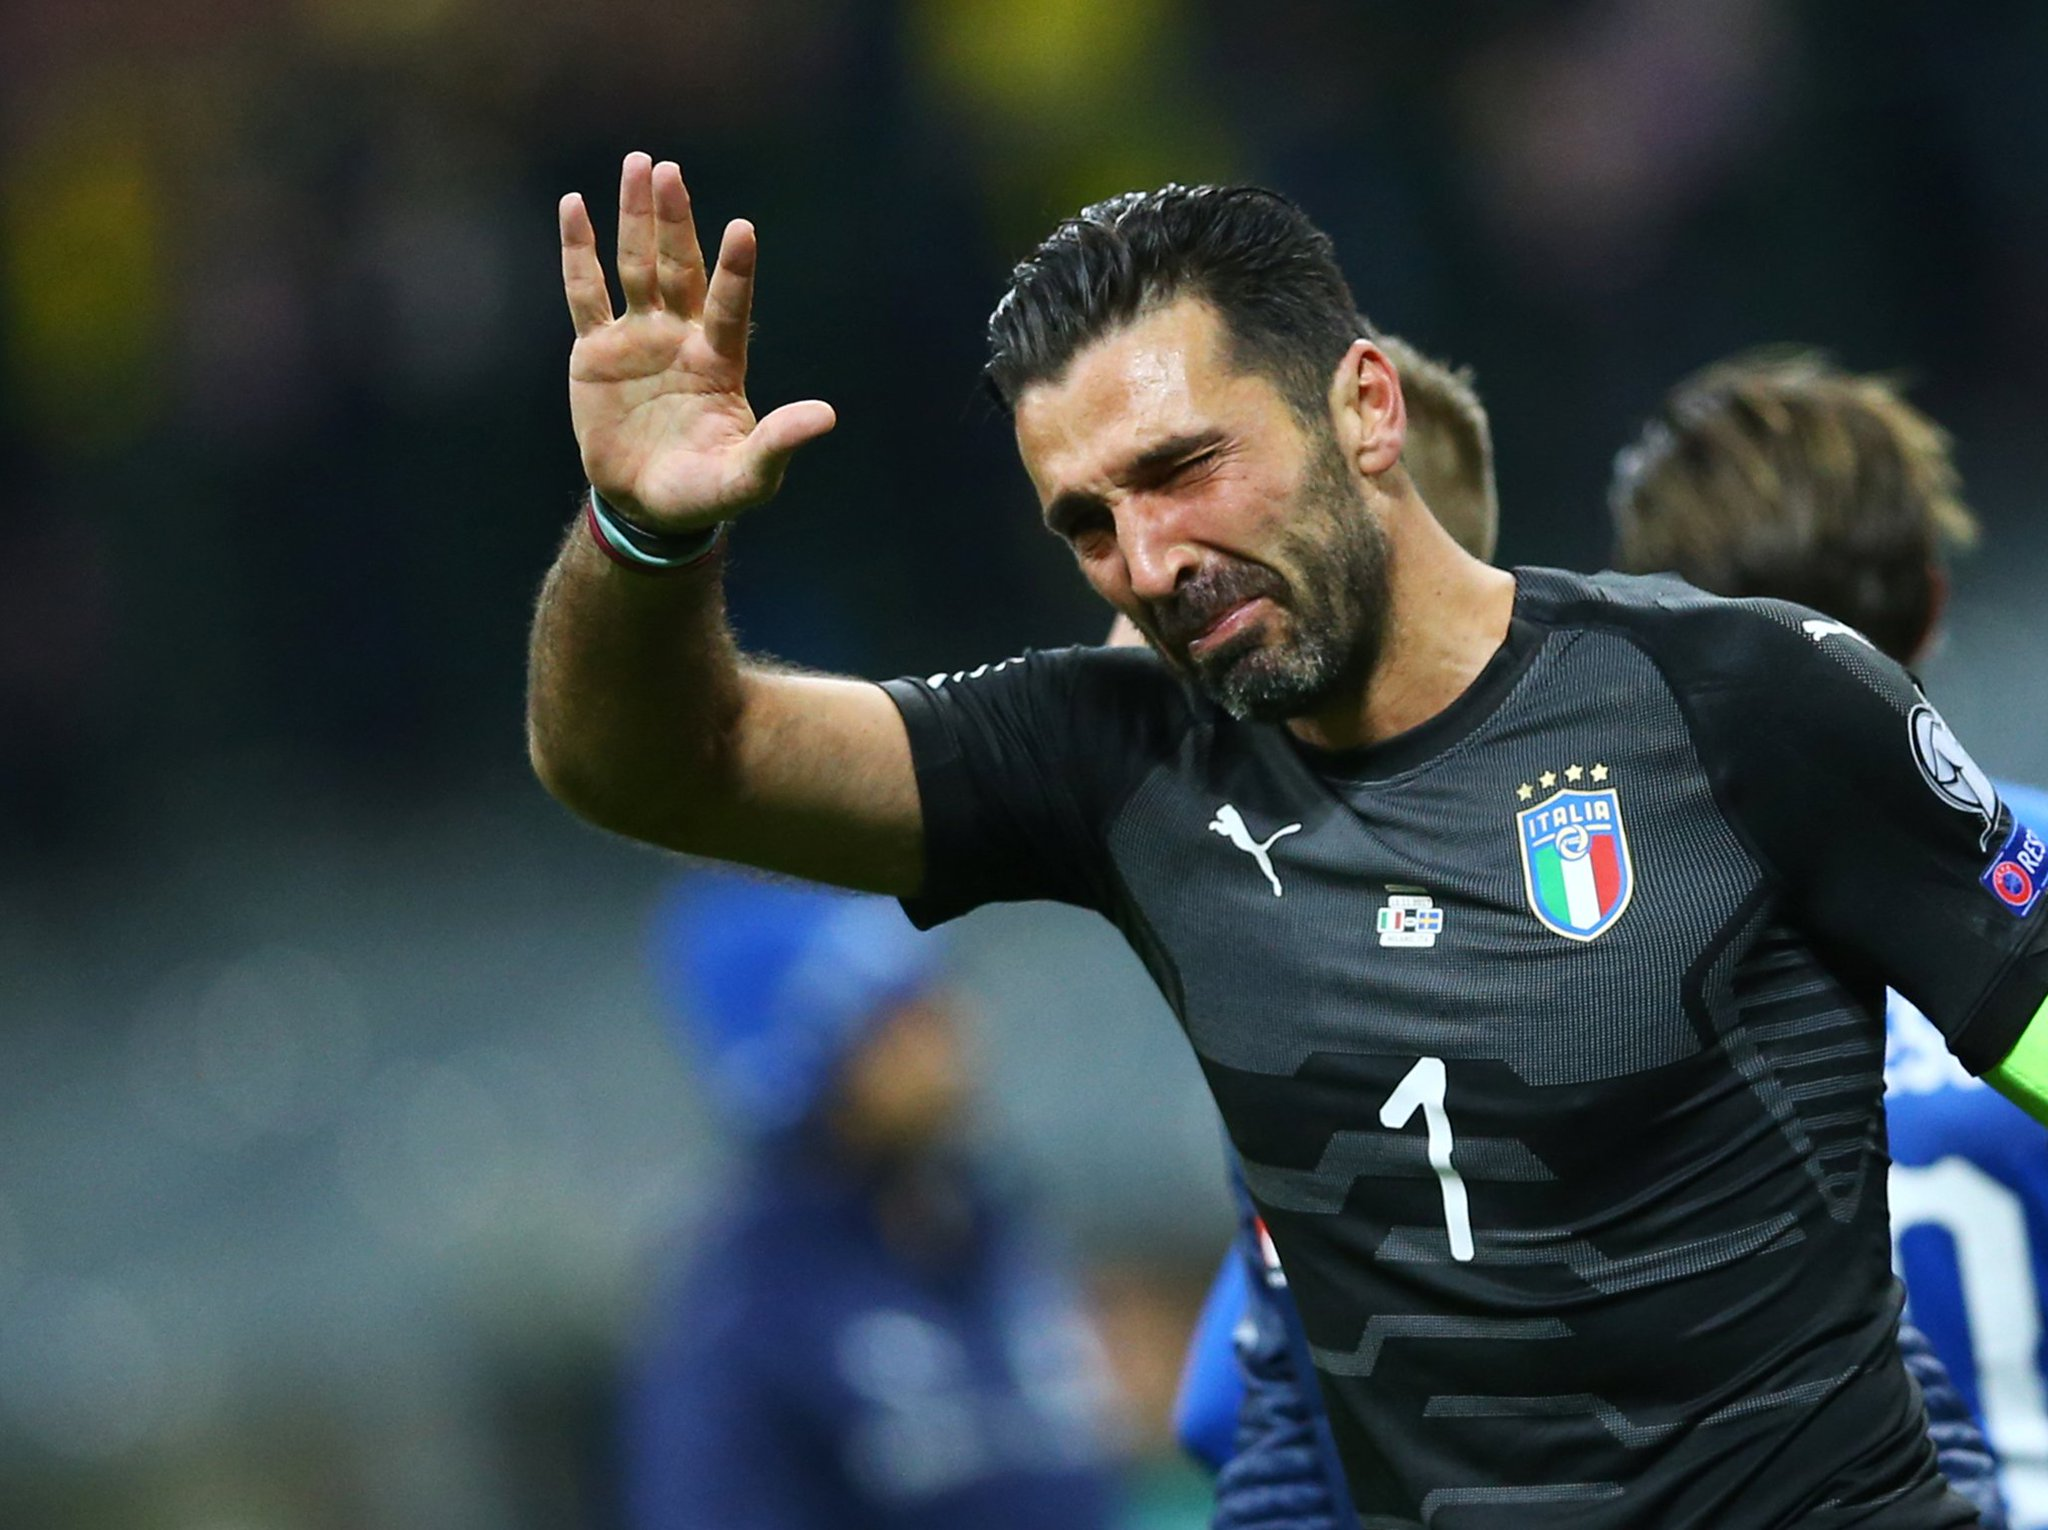 "Gigi Buffon: ""I'm not sorry for myself but all of Italian football"" #ITAvSWE https://t.co/nqXgFOcI2d https://t.co/W6BvBdmyVx"